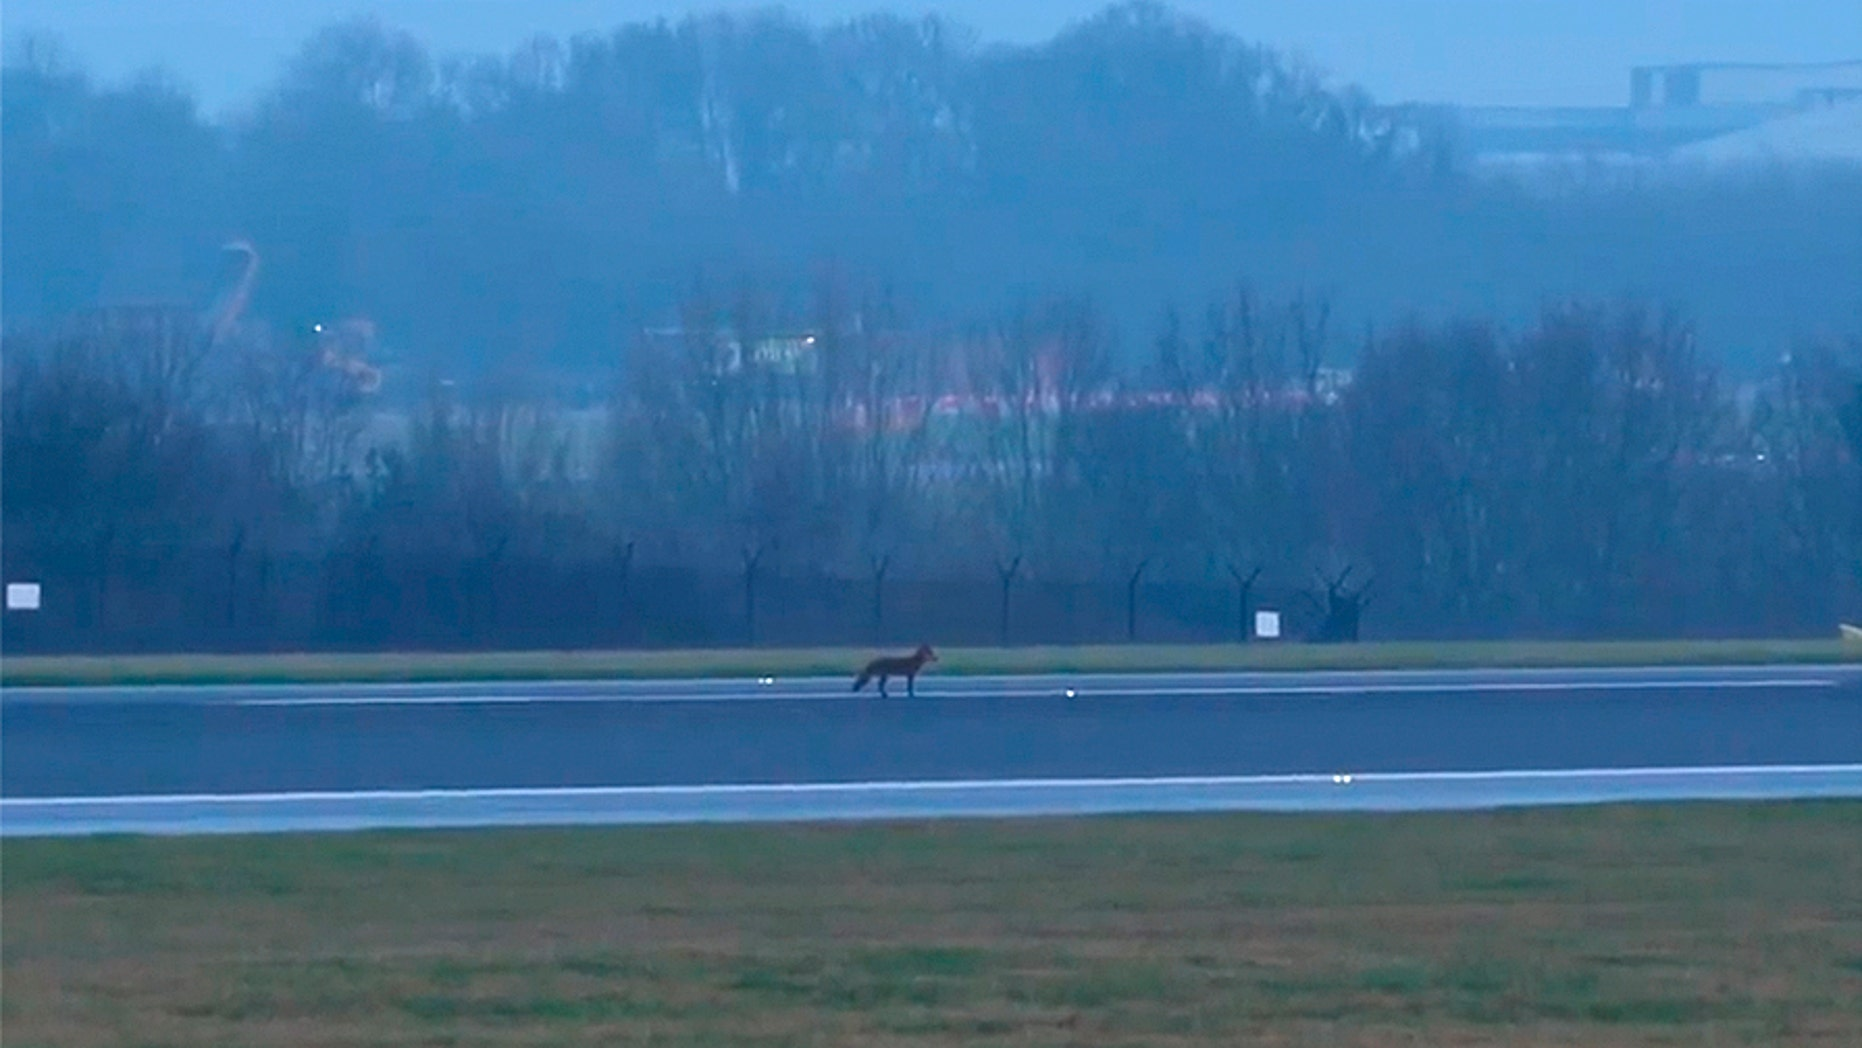 A fox on the runway reportedly halted operations at Manchester Airport in England.